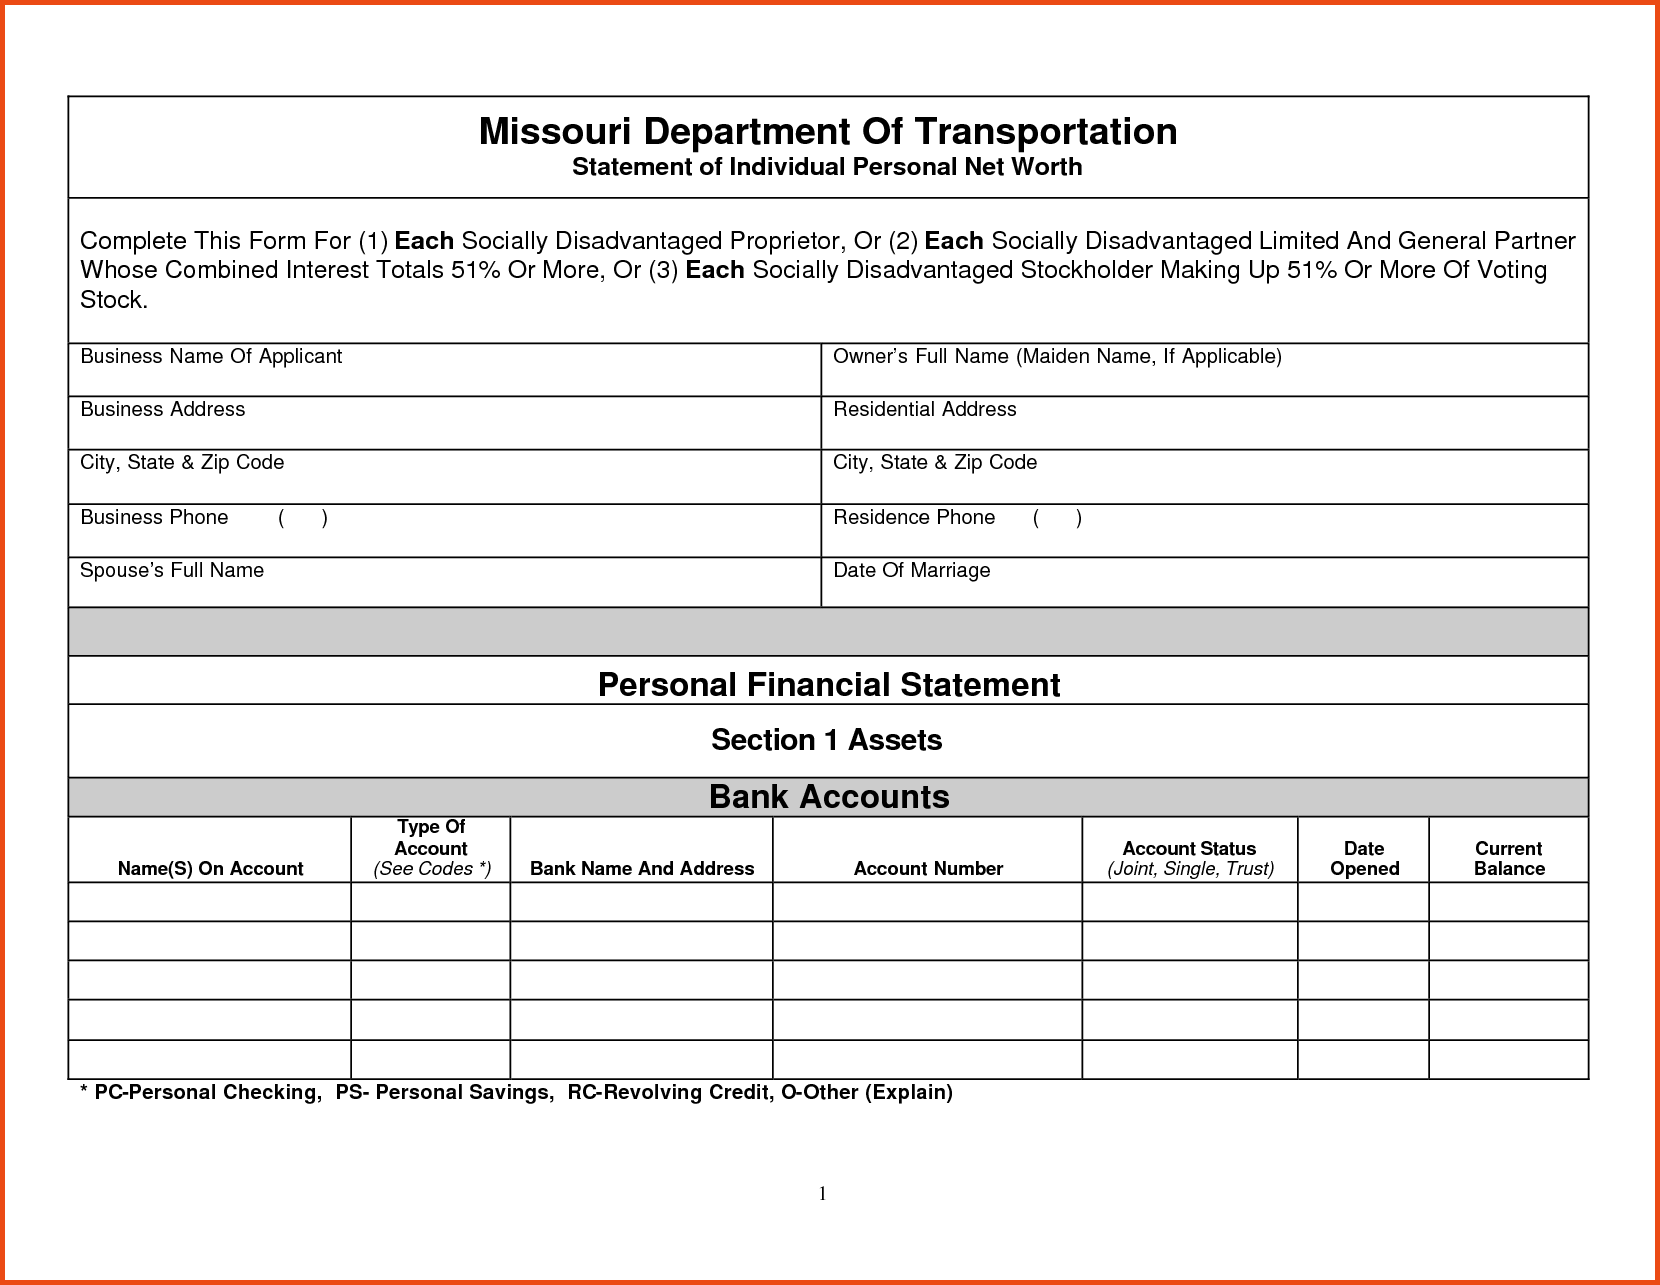 Bill Of Sale Missouri Template and Bill Of Sale Missouri Missouri Bill Of Sale 791Ã 1024